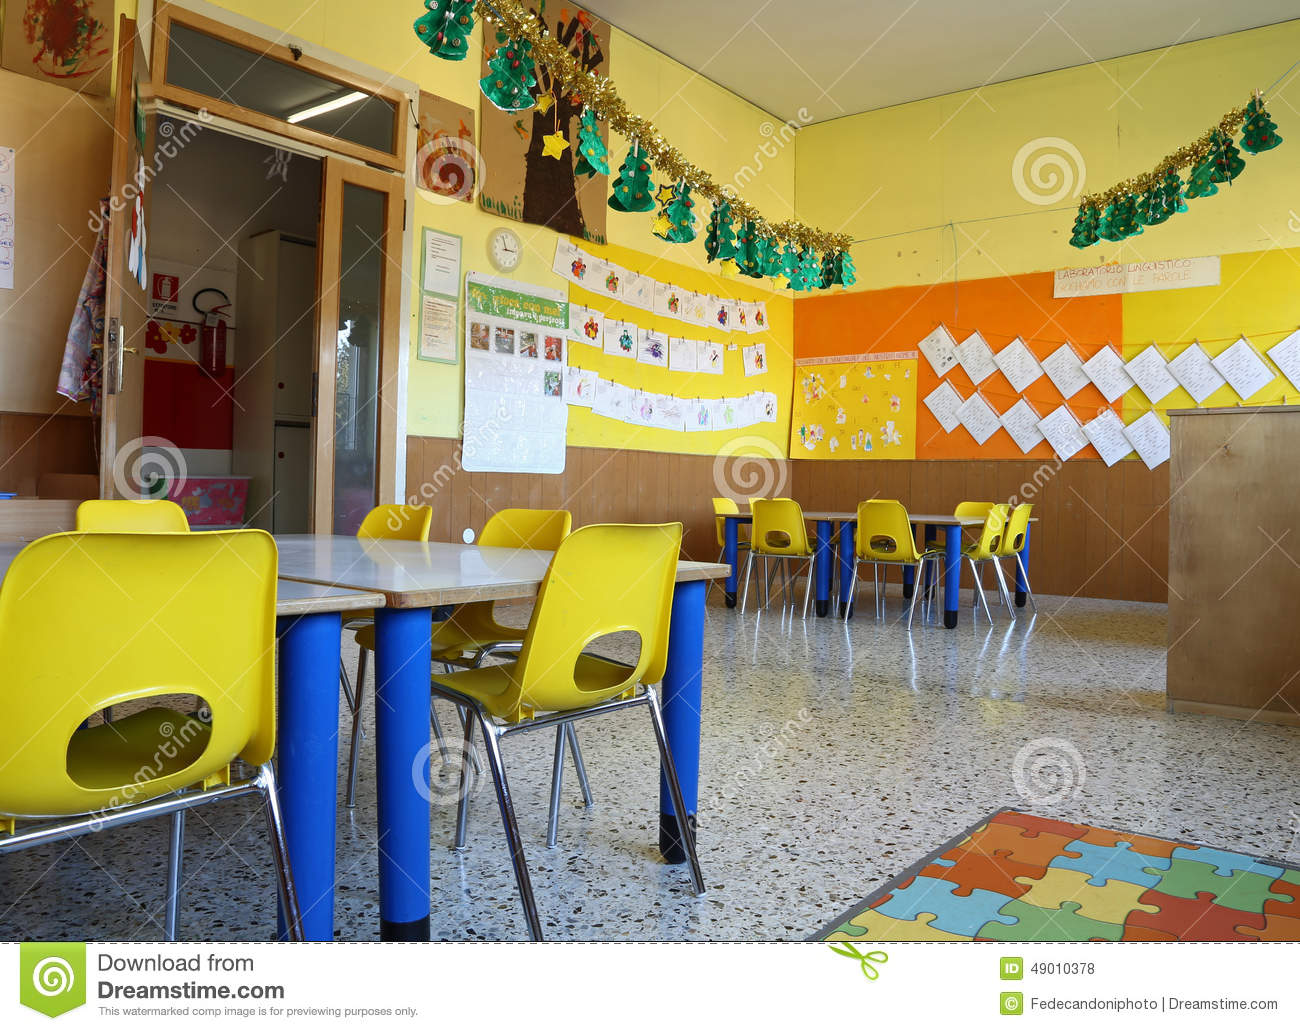 Kindergarten Classroom With Chairs And Table With Drawings